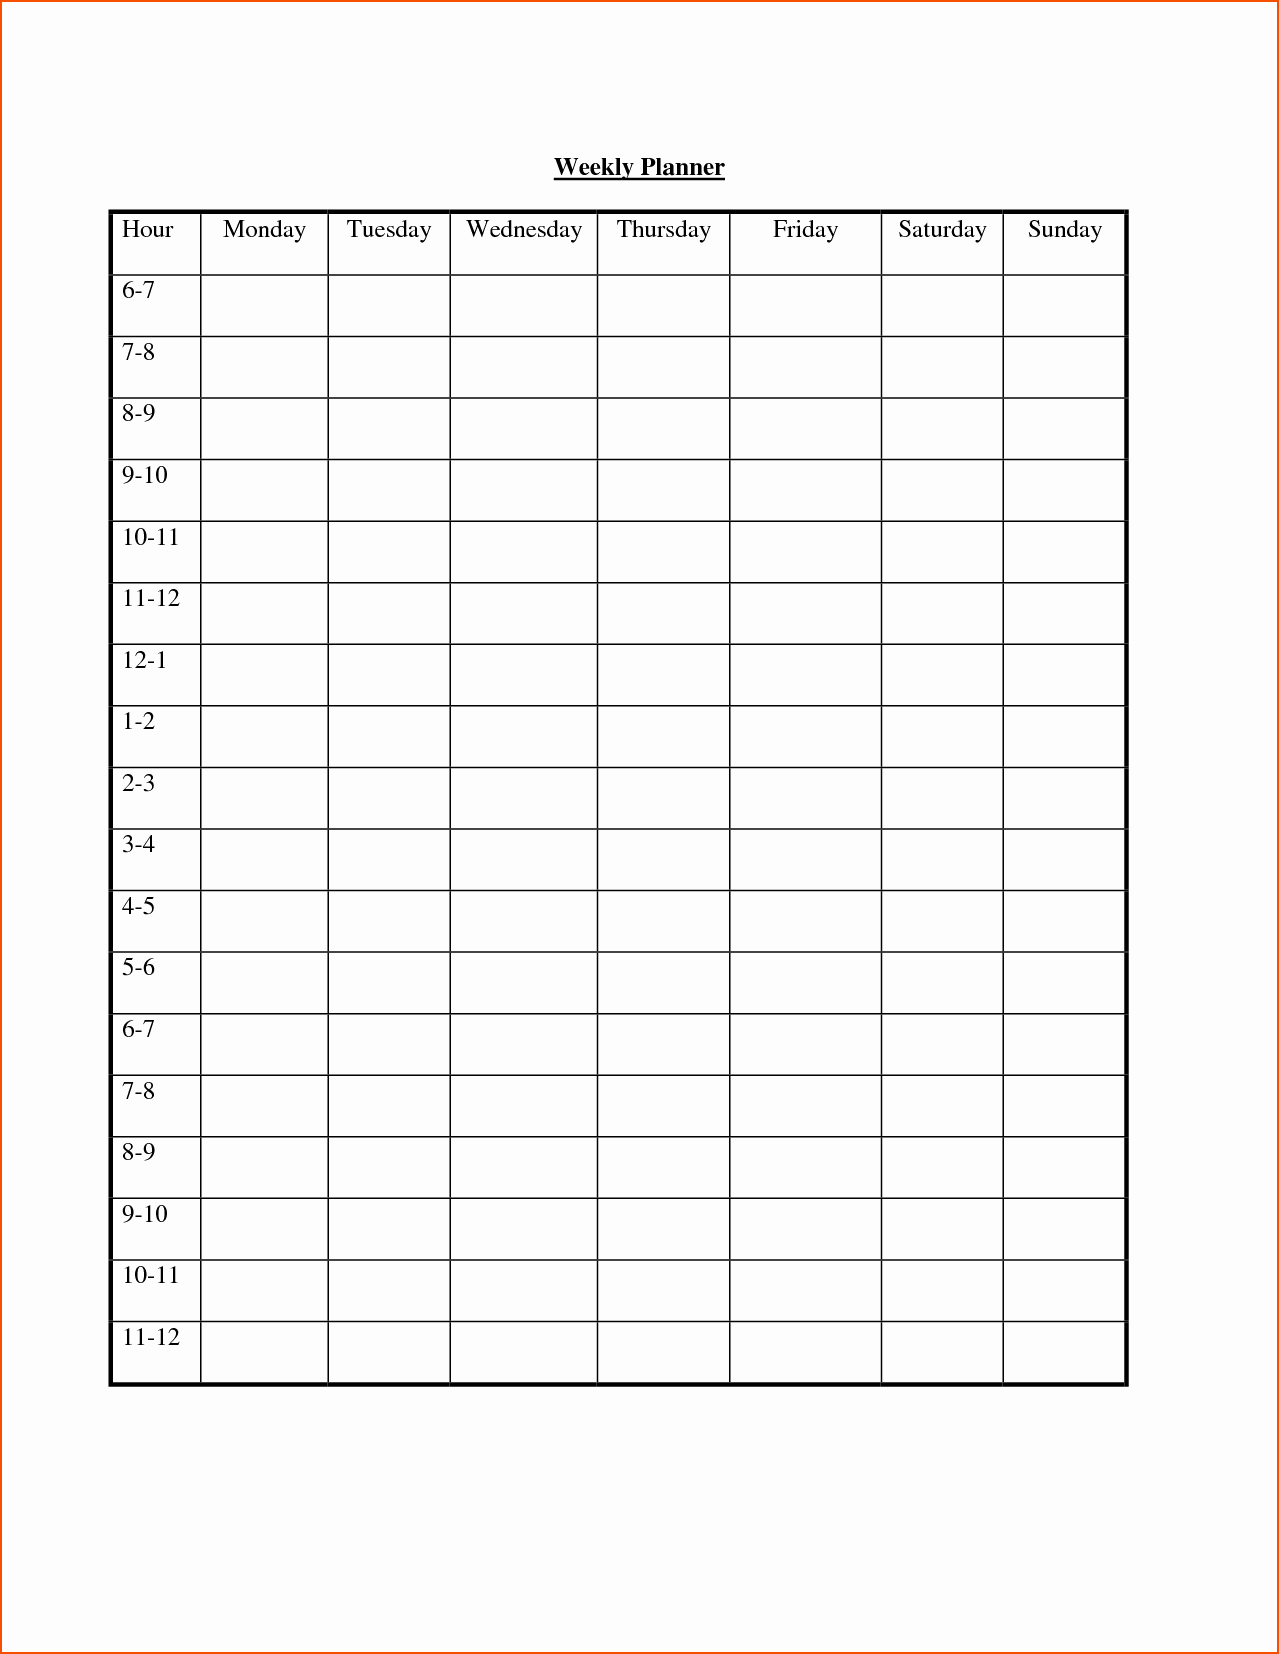 7 Weekly Hourly Planner Bookletemplate